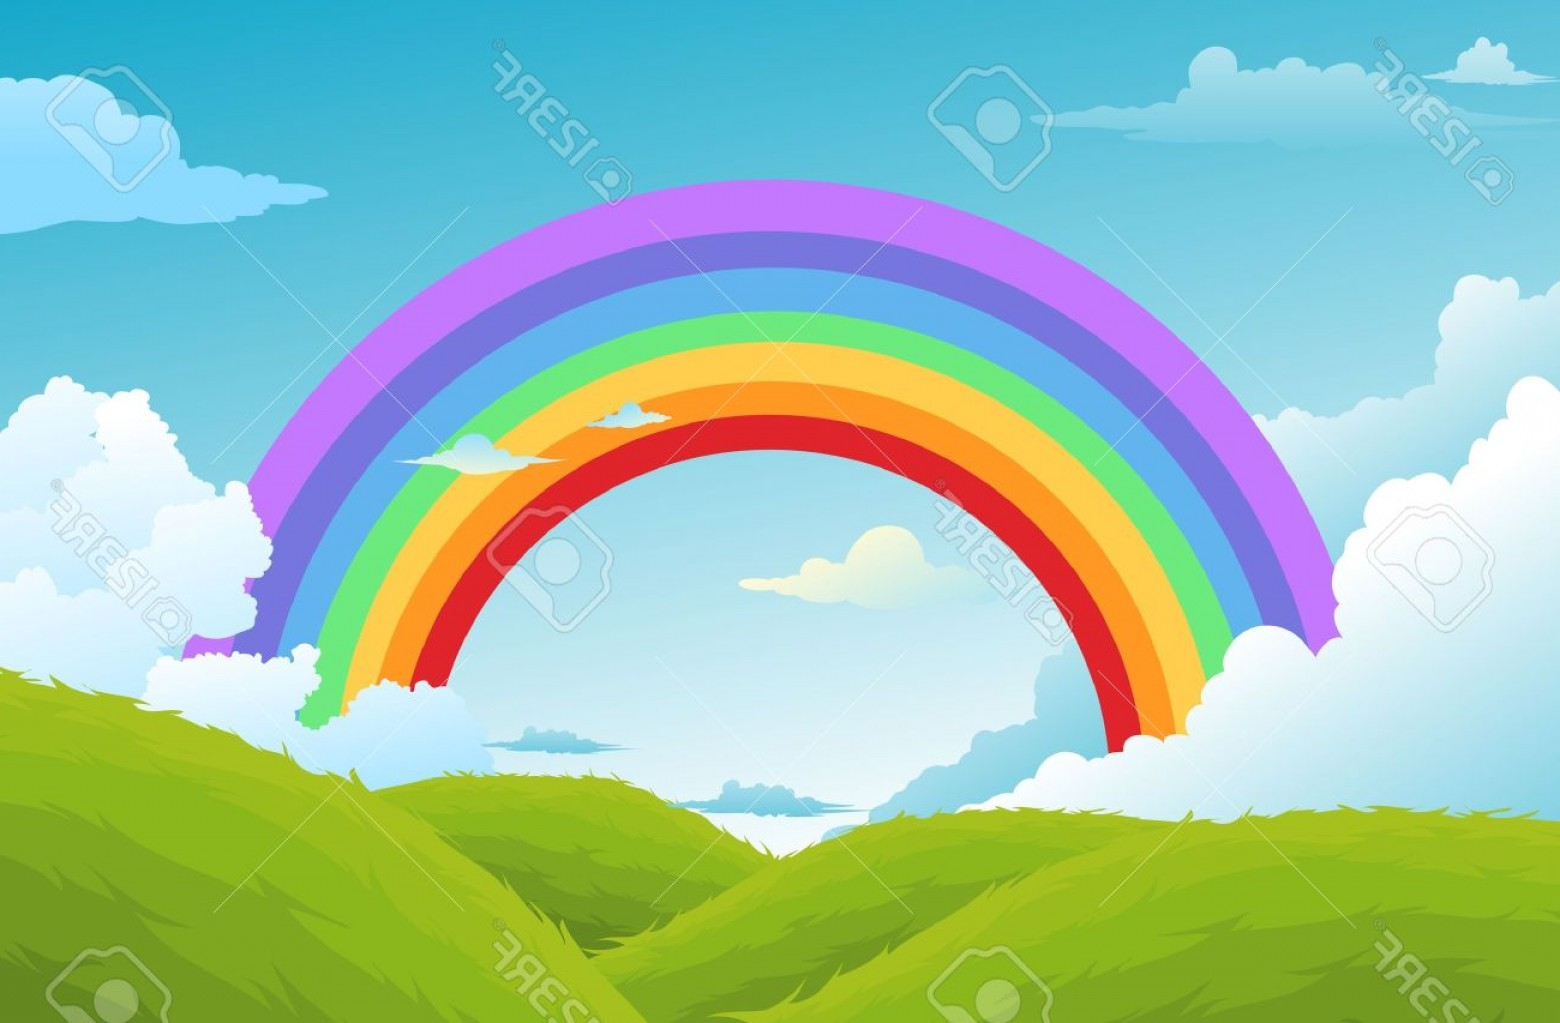 Clouds Backgrounds Vector: Photorainbow And Clouds In The Sky Background